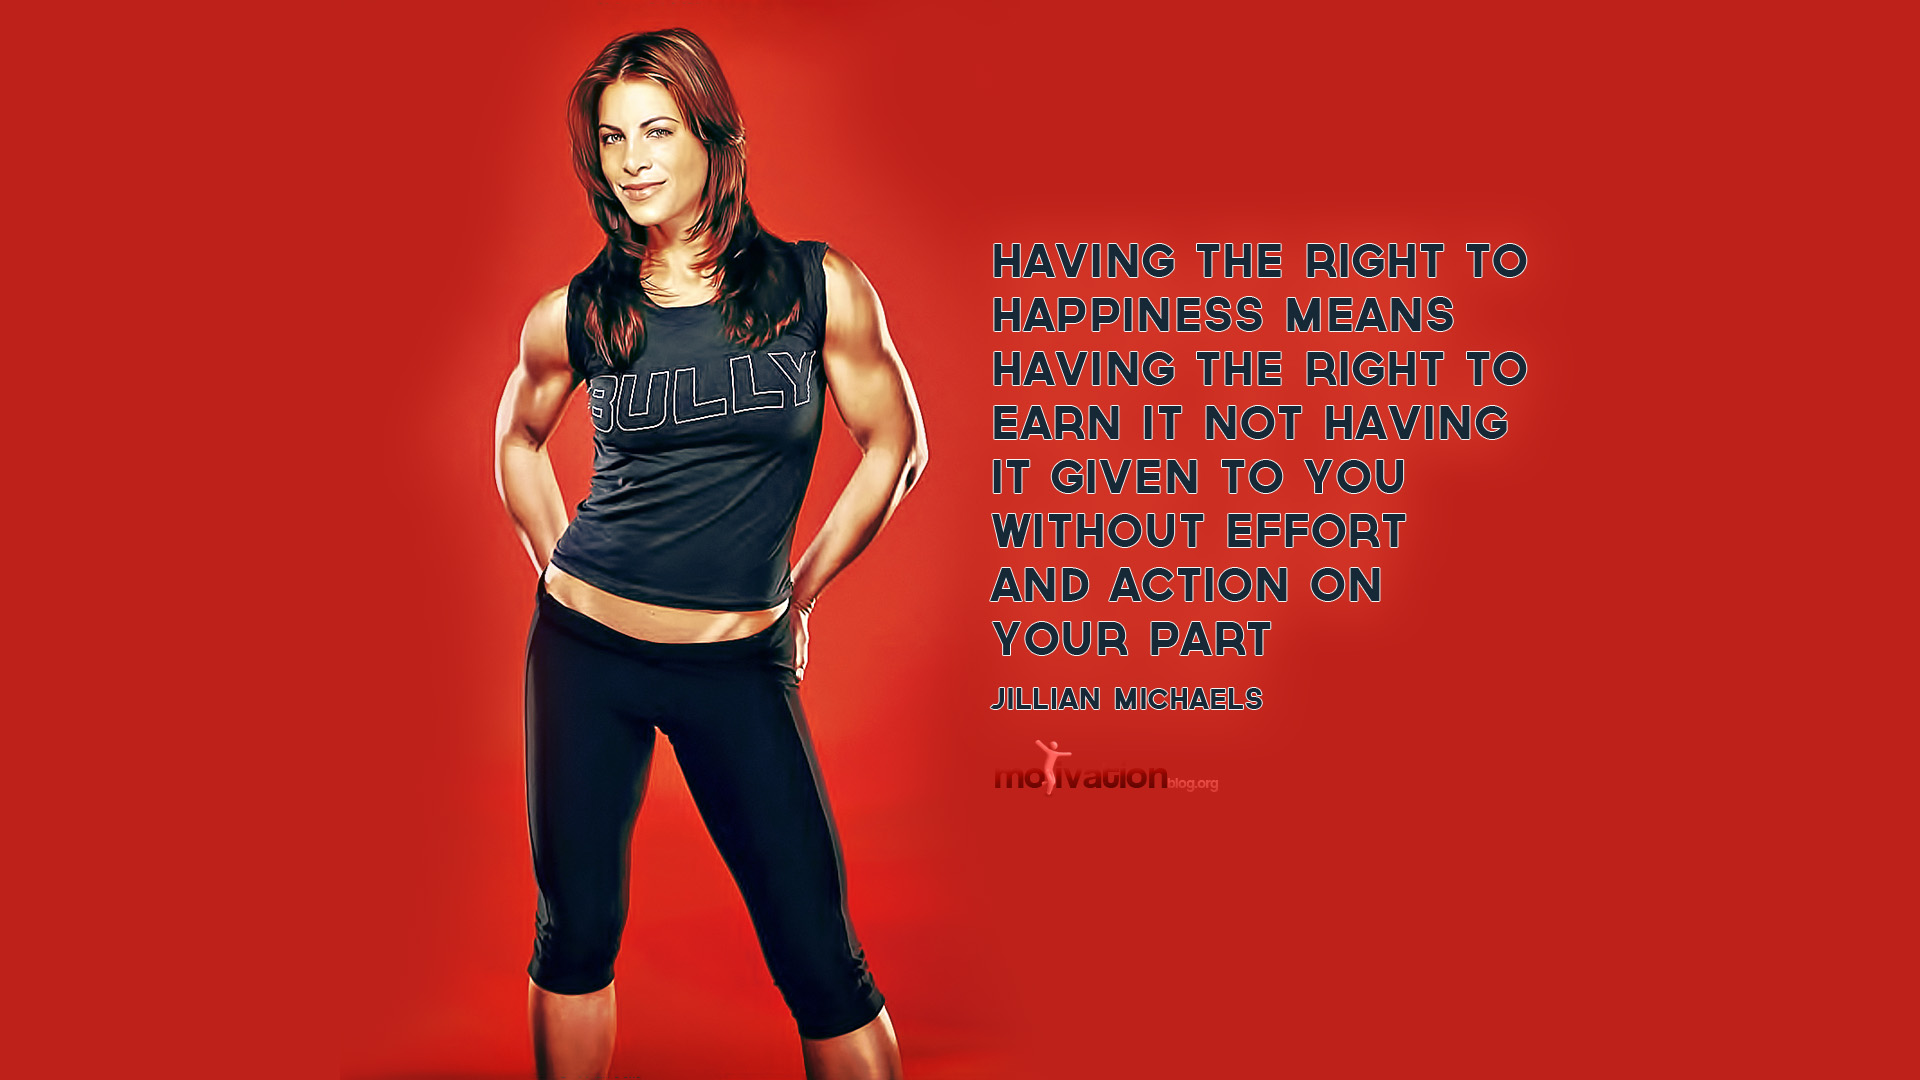 Biggest loser inspirational quotes quotesgram - Weight loss motivation backgrounds ...